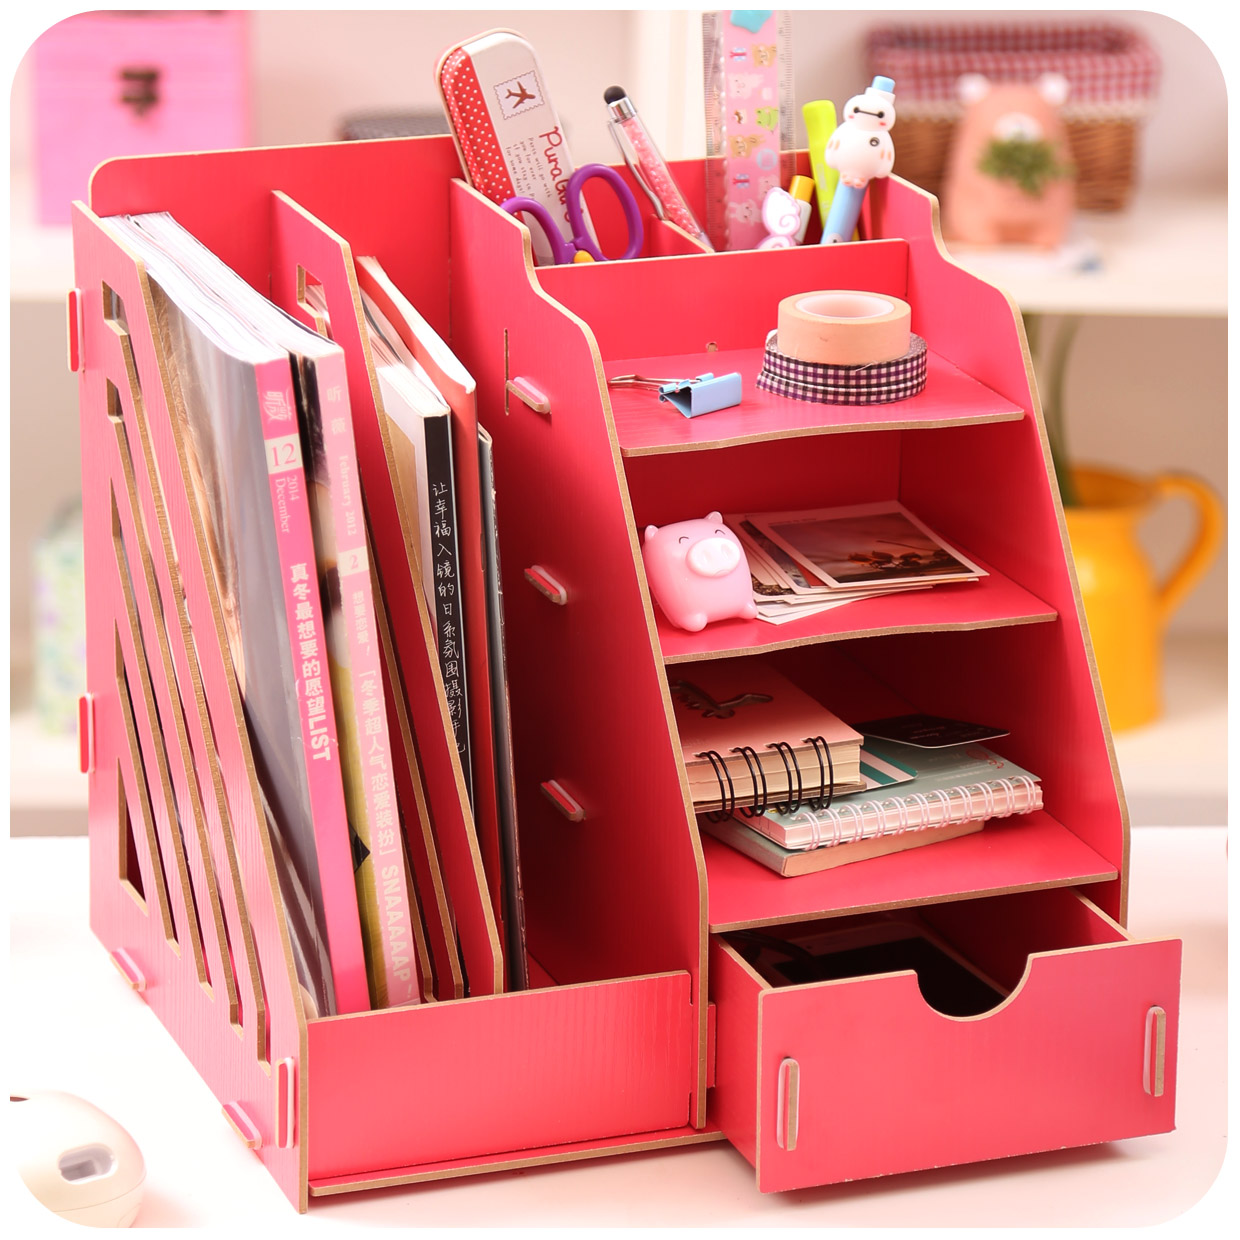 Aliexpress.com : Buy Creative DIY Wooden Desktop File